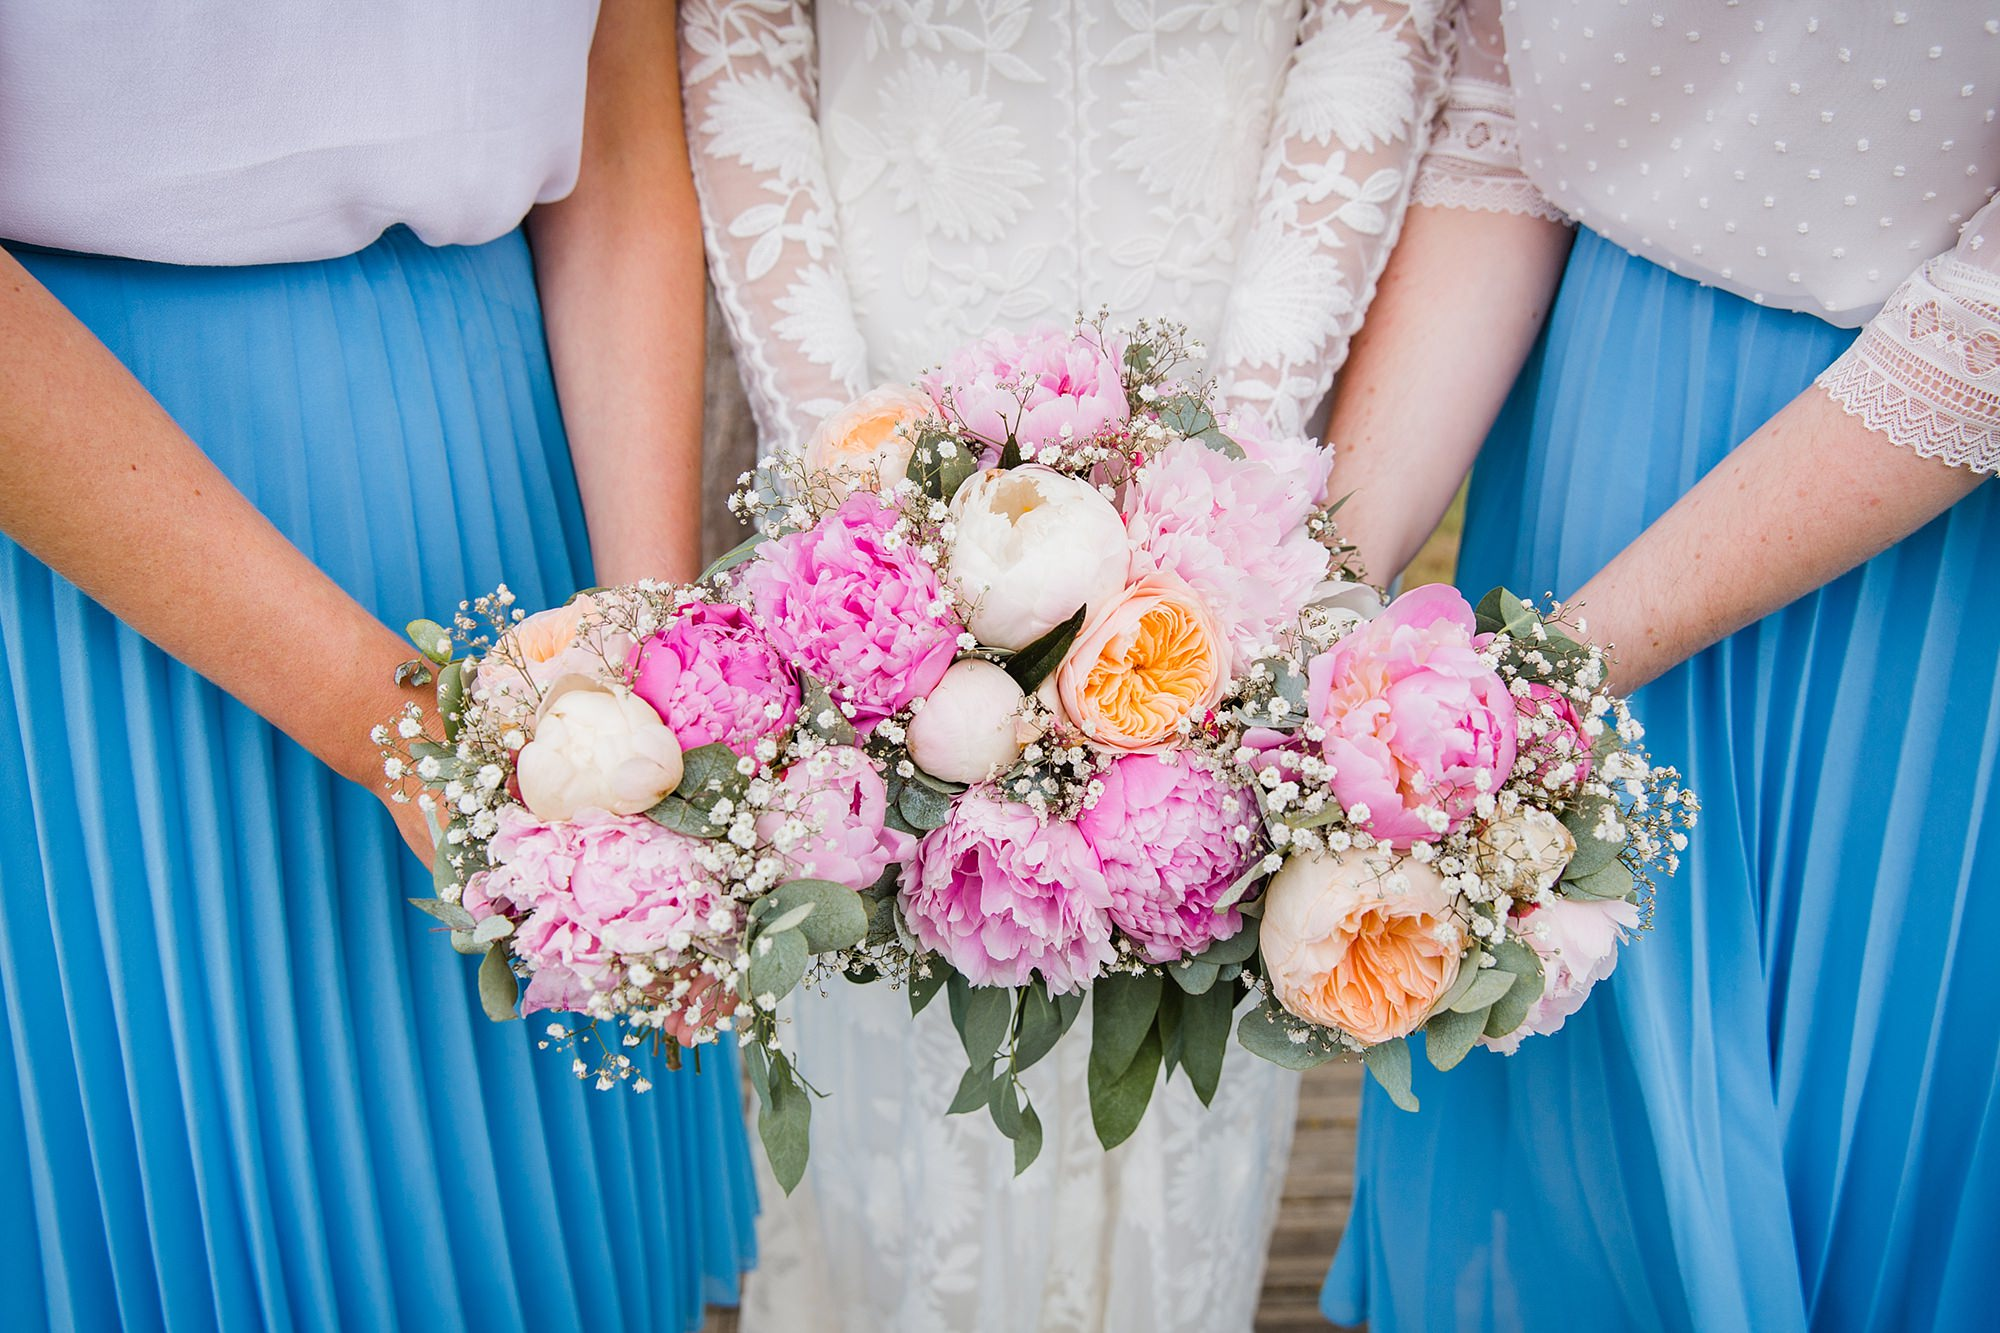 Isis Farmhouse Oxford Wedding close up detail of bride and bridesmaids bouquets